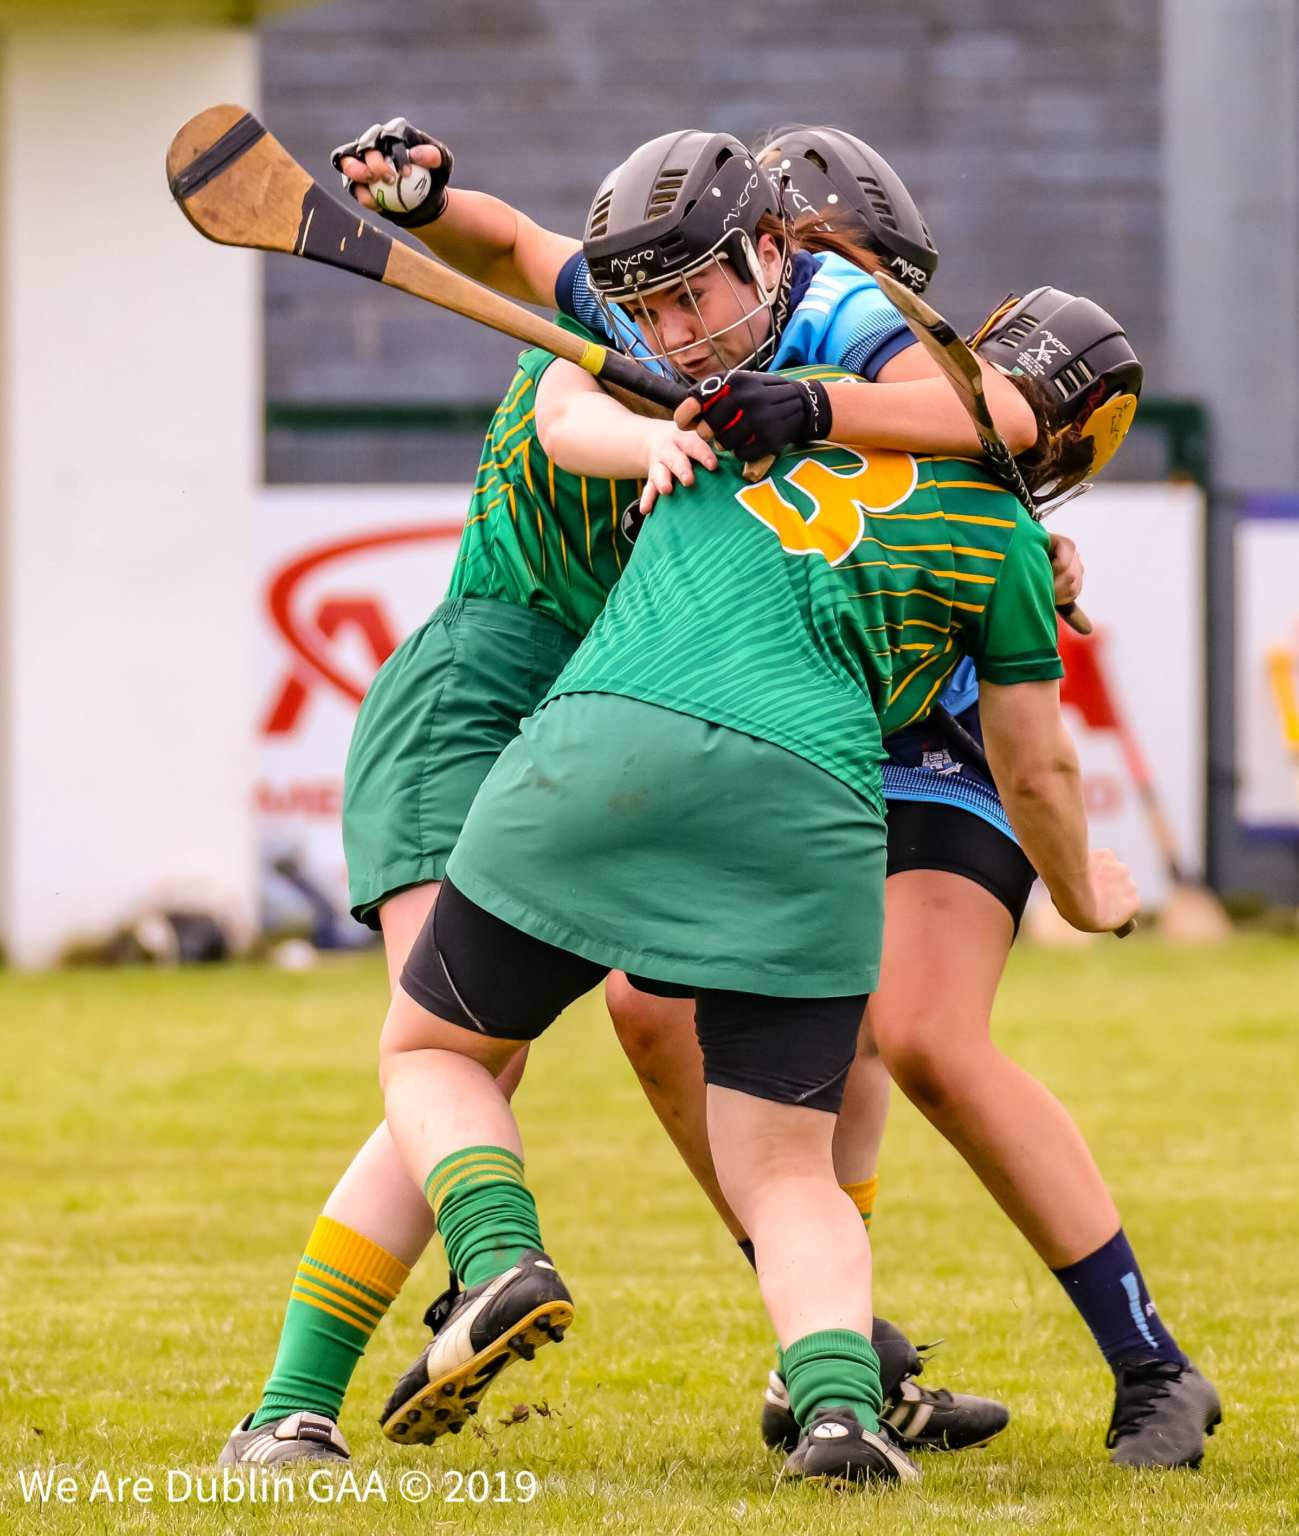 A Dublin Camogie Player is tackled by two meath players during a championship match, next season there will be trial rule changes to the game which may include the tackle rule